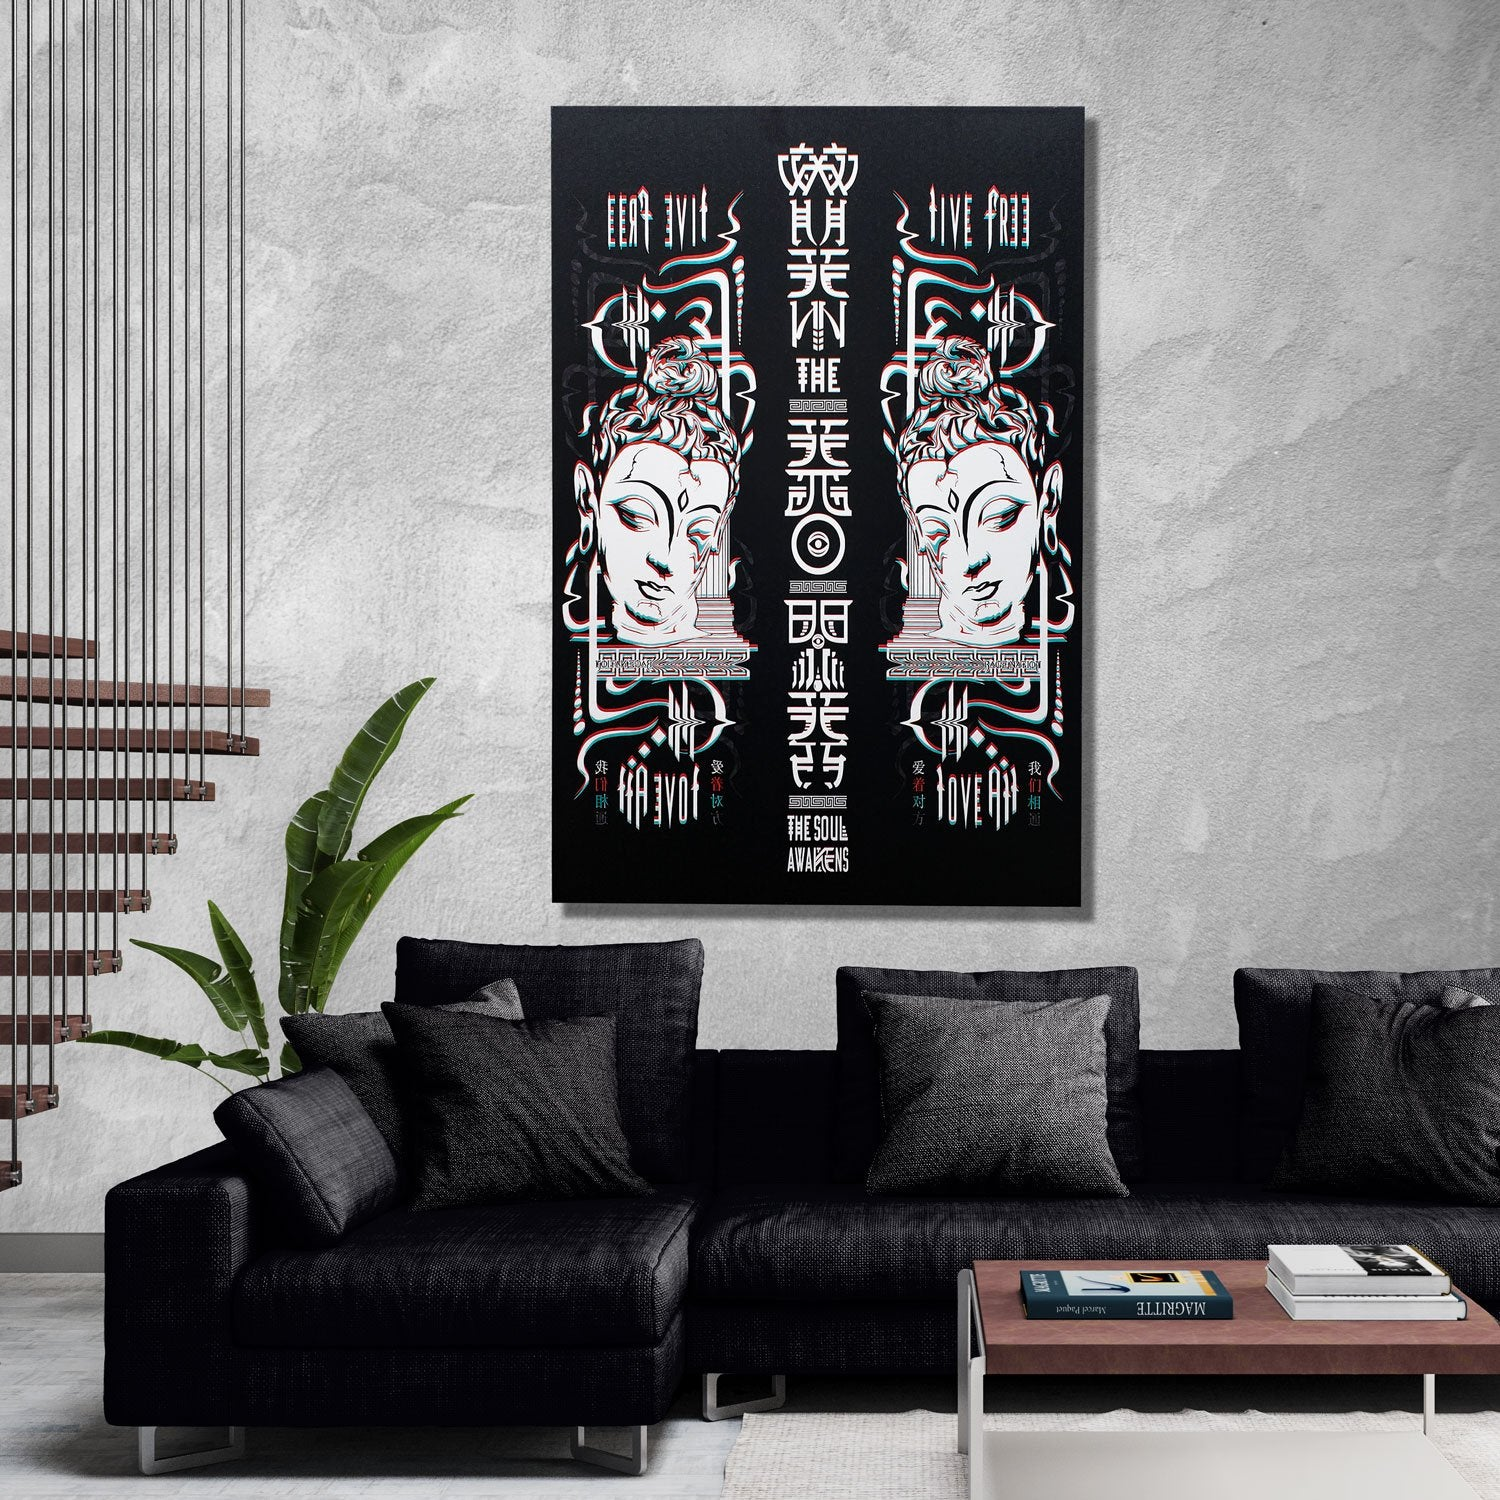 LIVE FREE LOVE ALL • Vertical Canvas Wrap Canvas